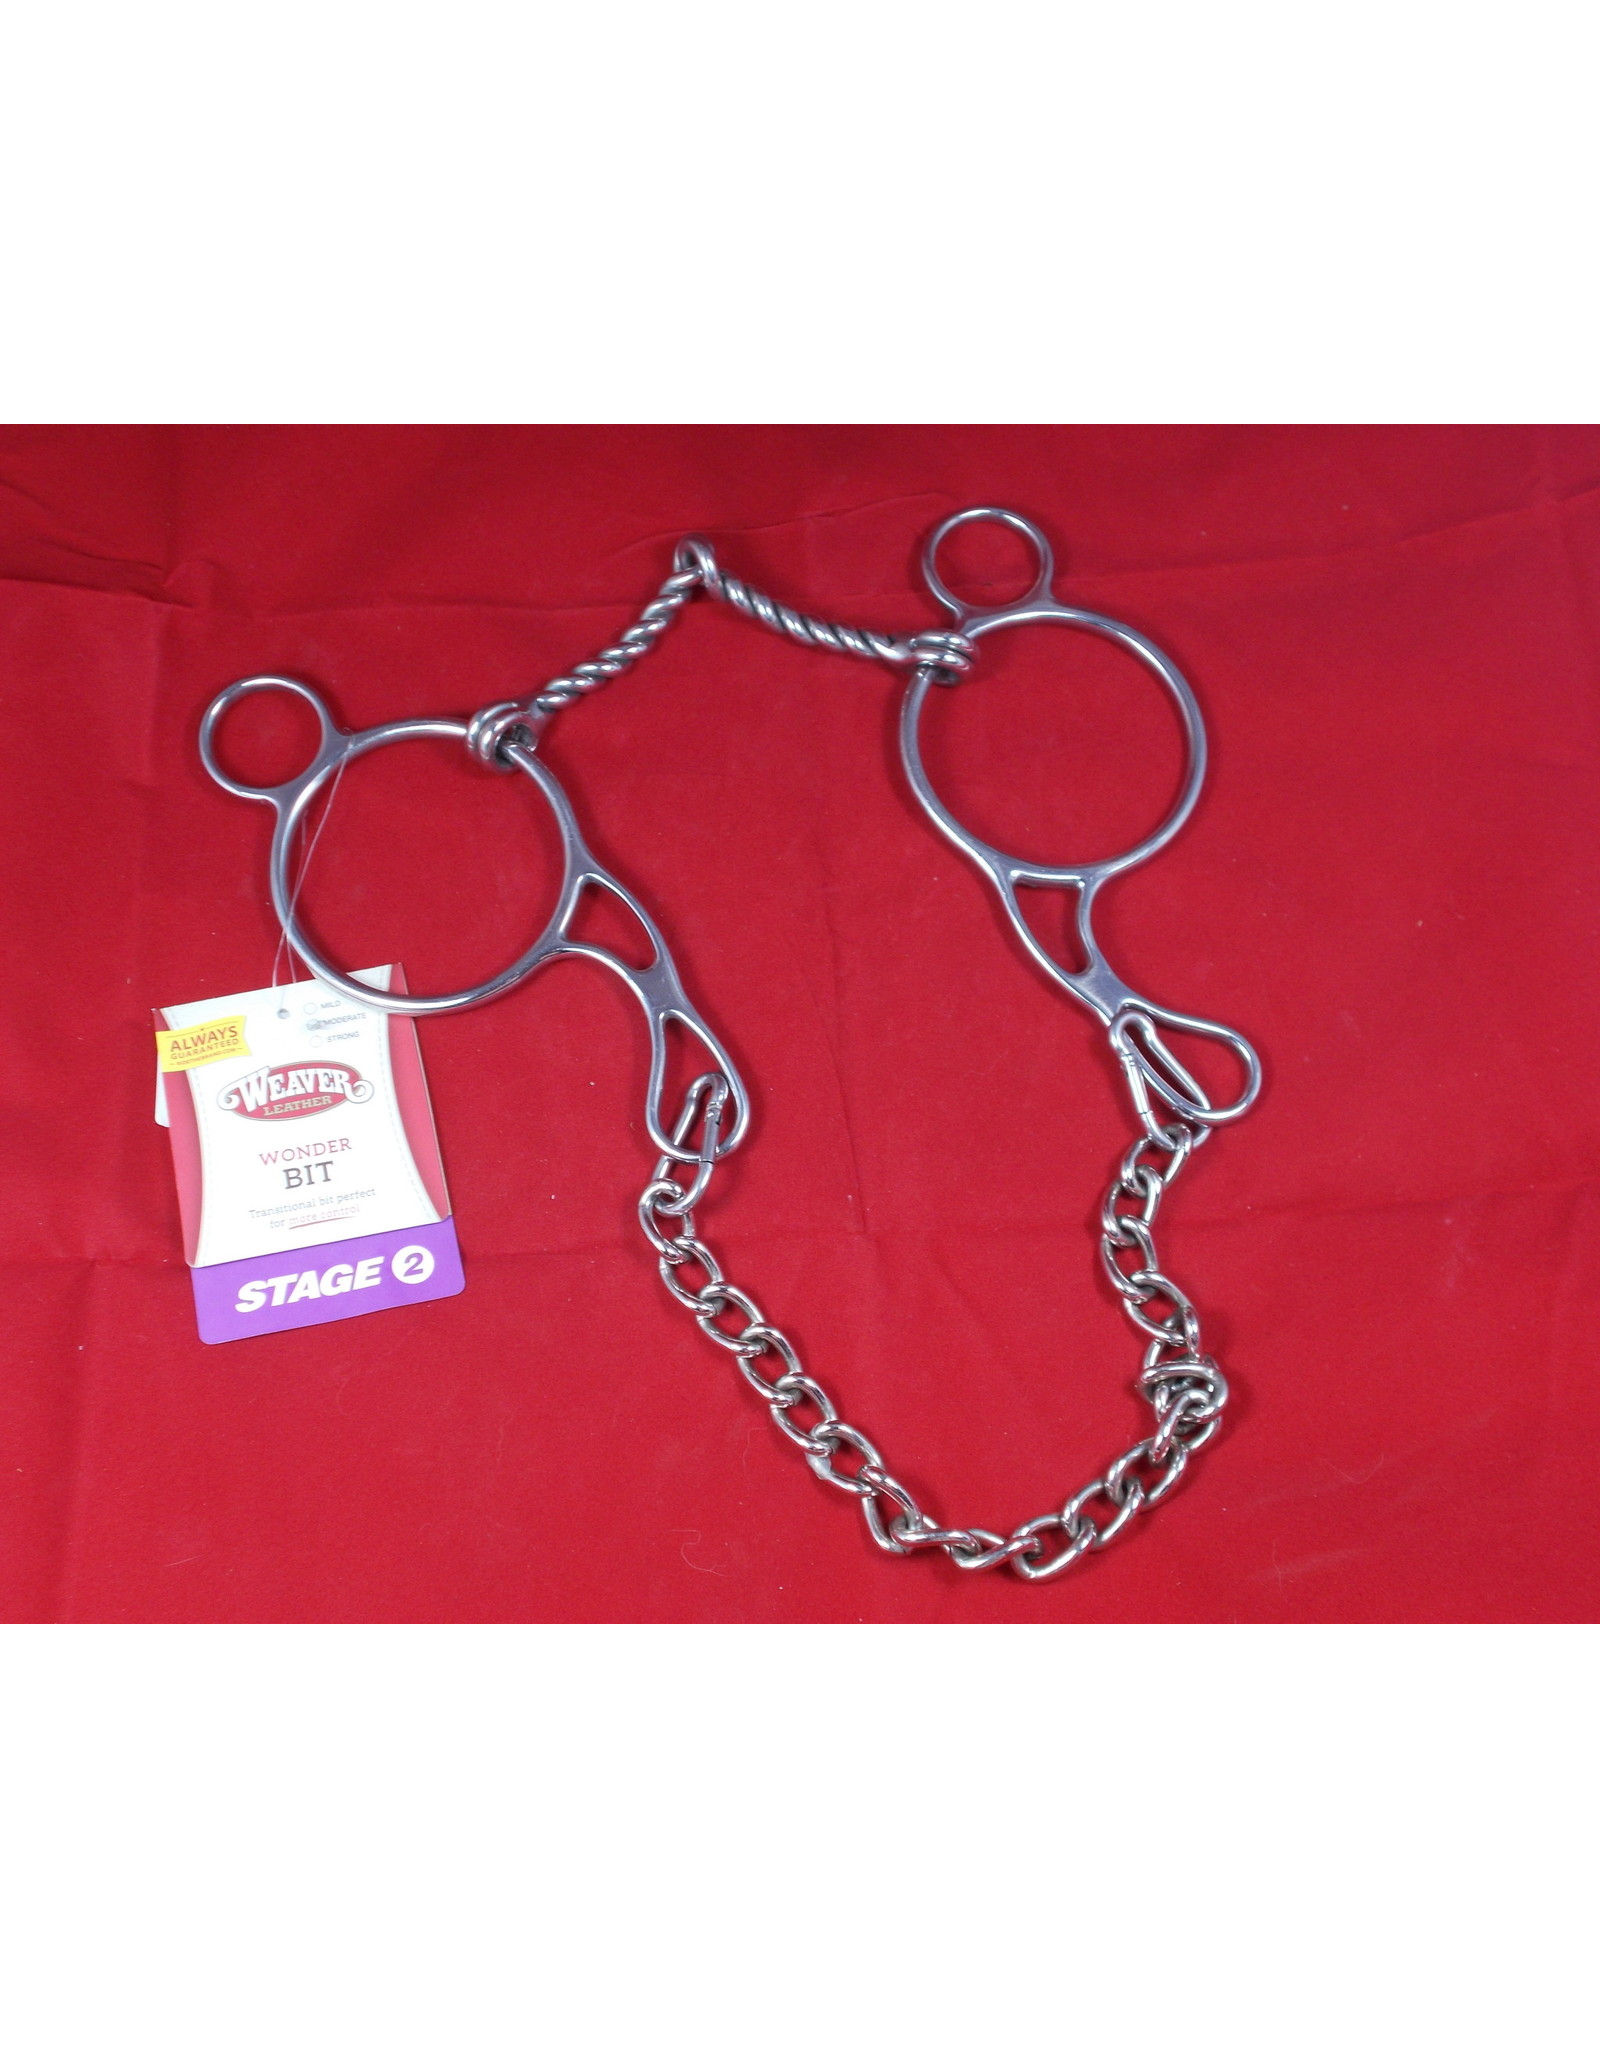 BIT* wonder bit stage2 moderate gag twisted snaffle 252-1812